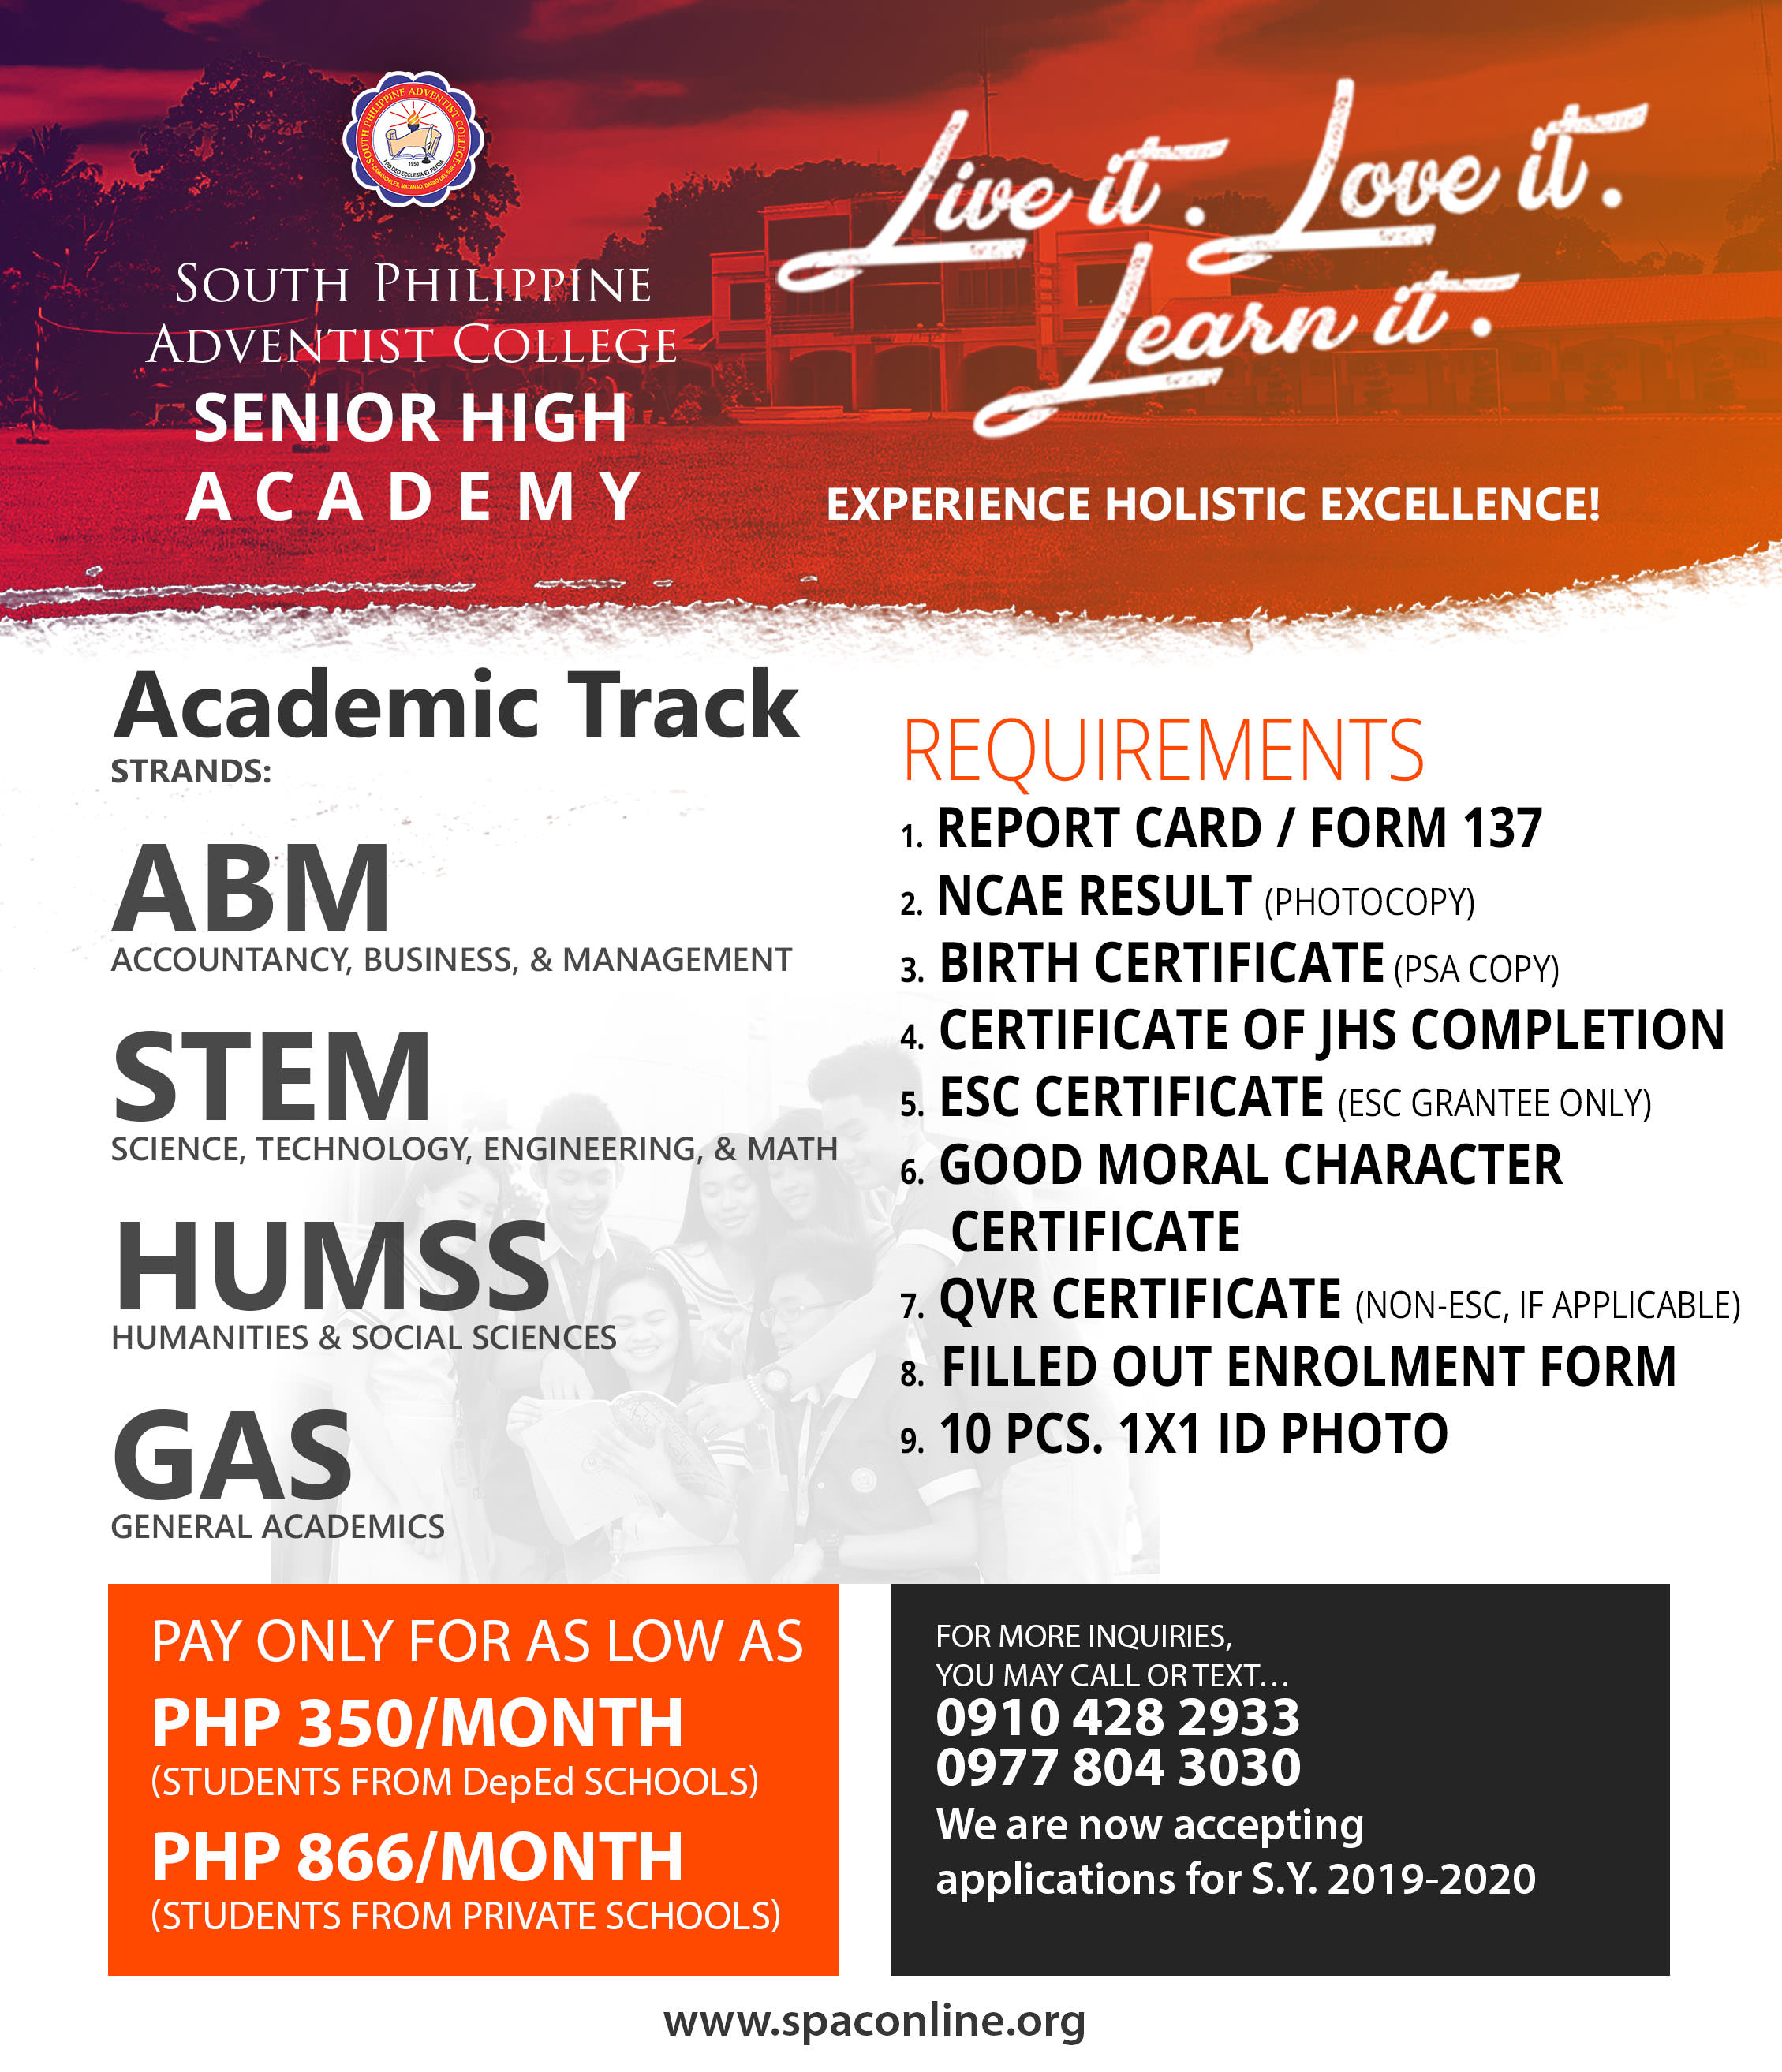 Experience Holistic Excellence